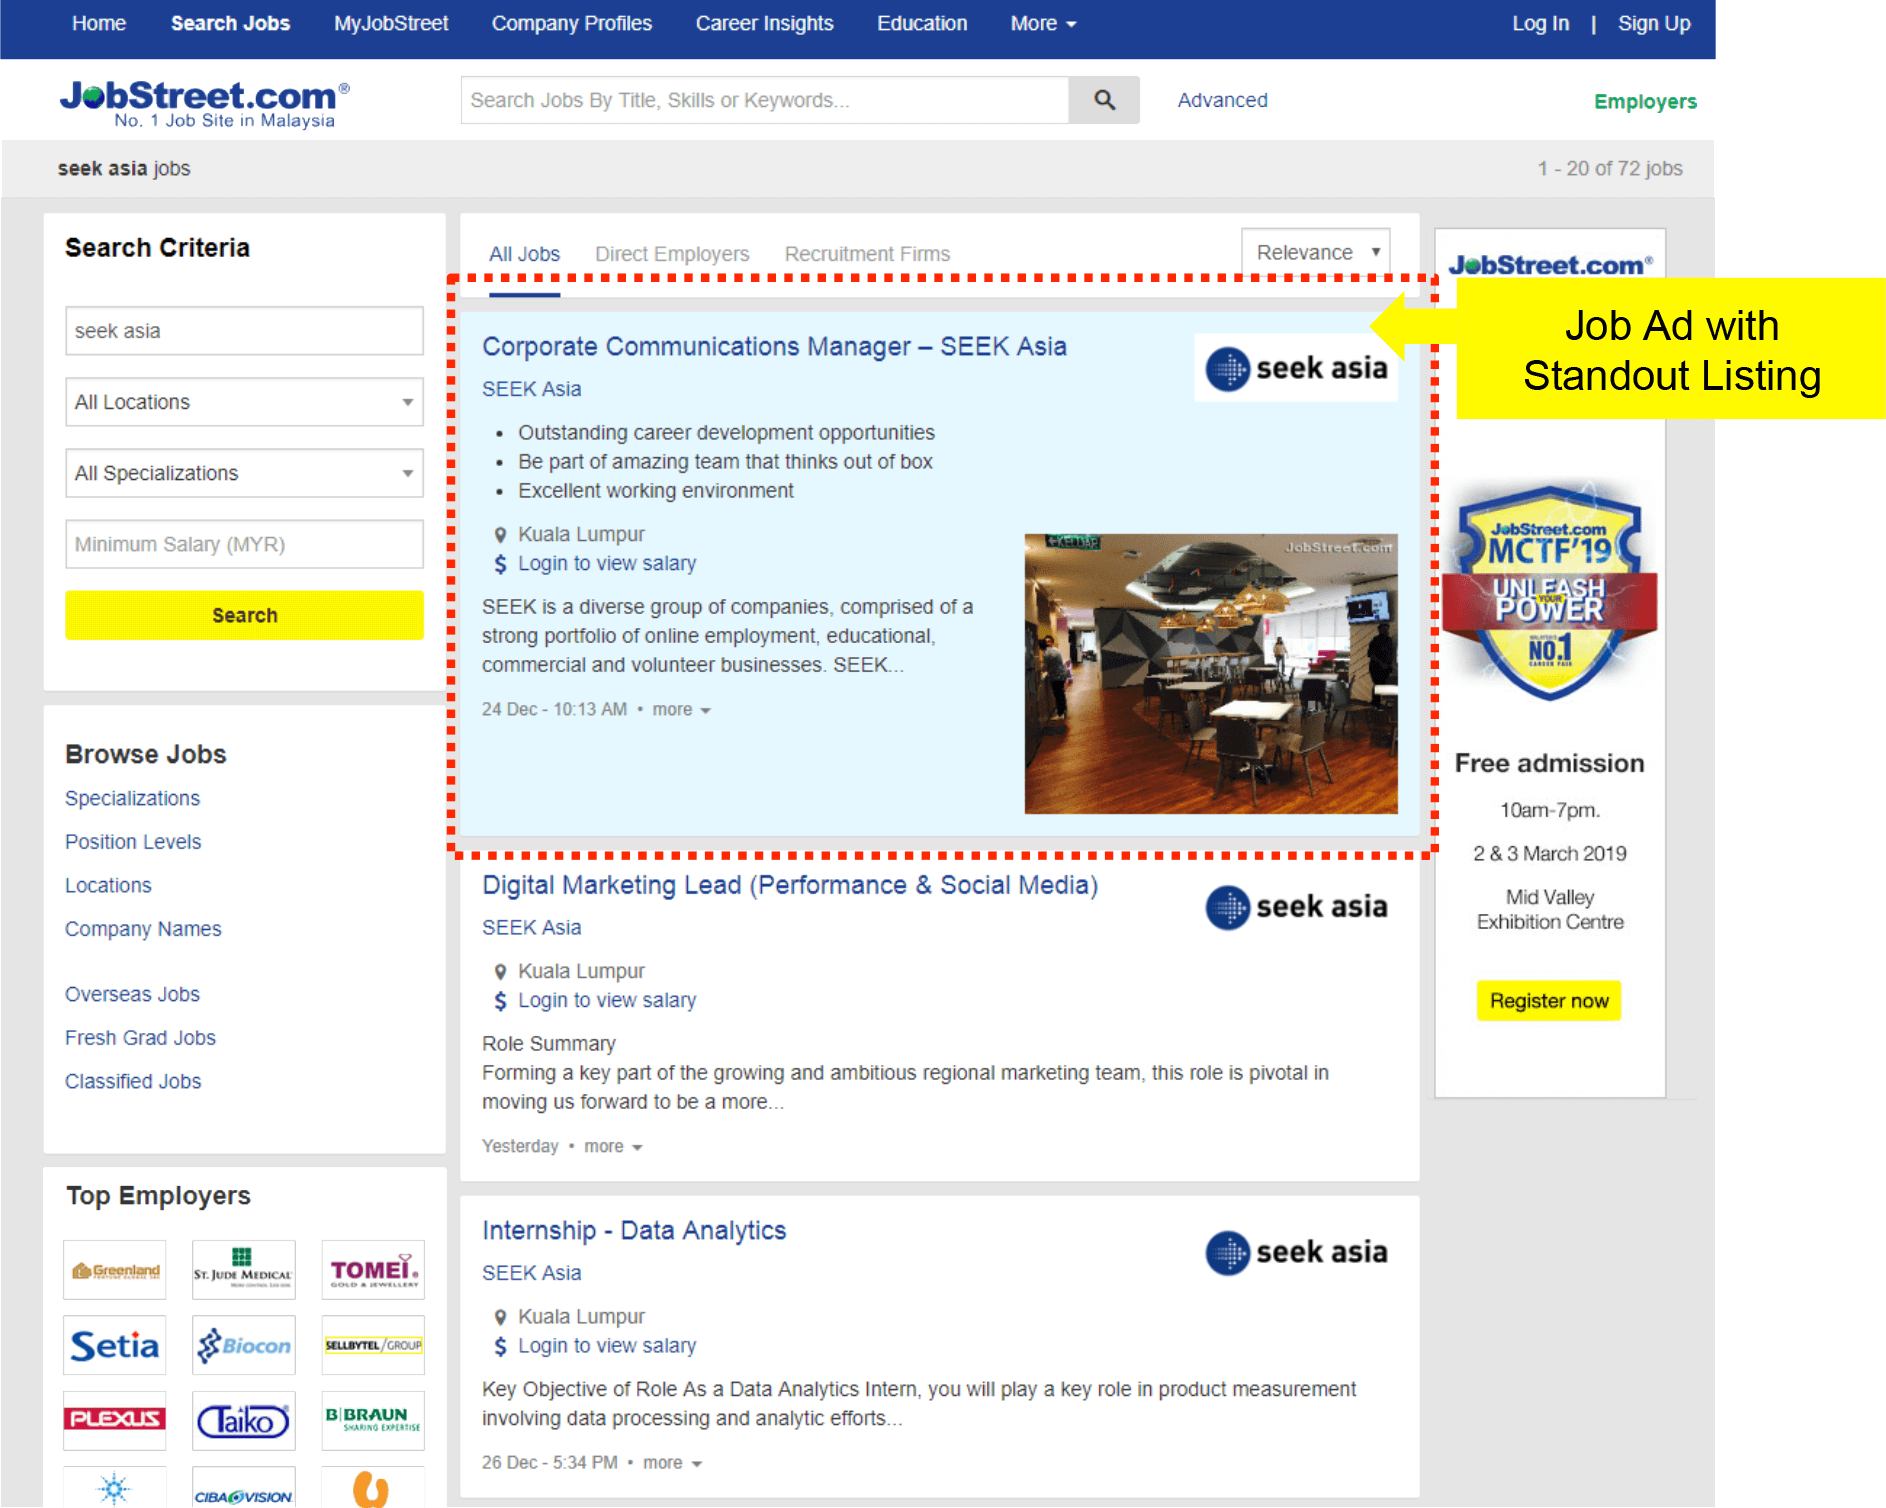 job-ad-posting-create-and-post-a-job-ad-screenshot-4-new